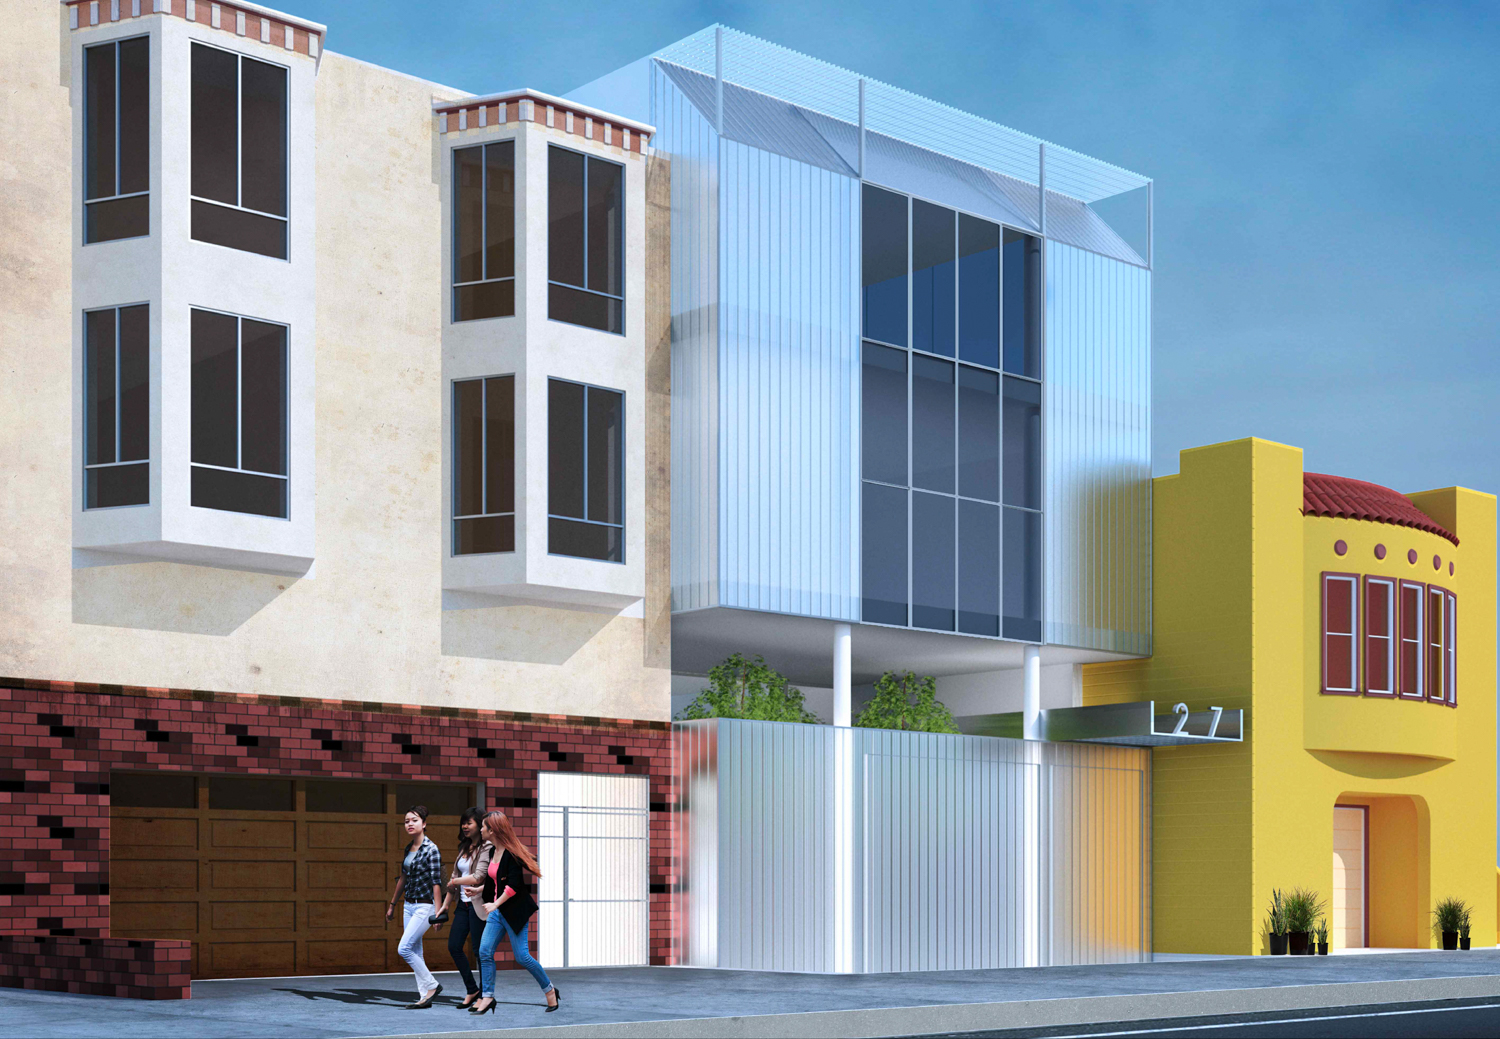 1271 46th Avenue new design, rendering by Stanley Saitowitz Architects